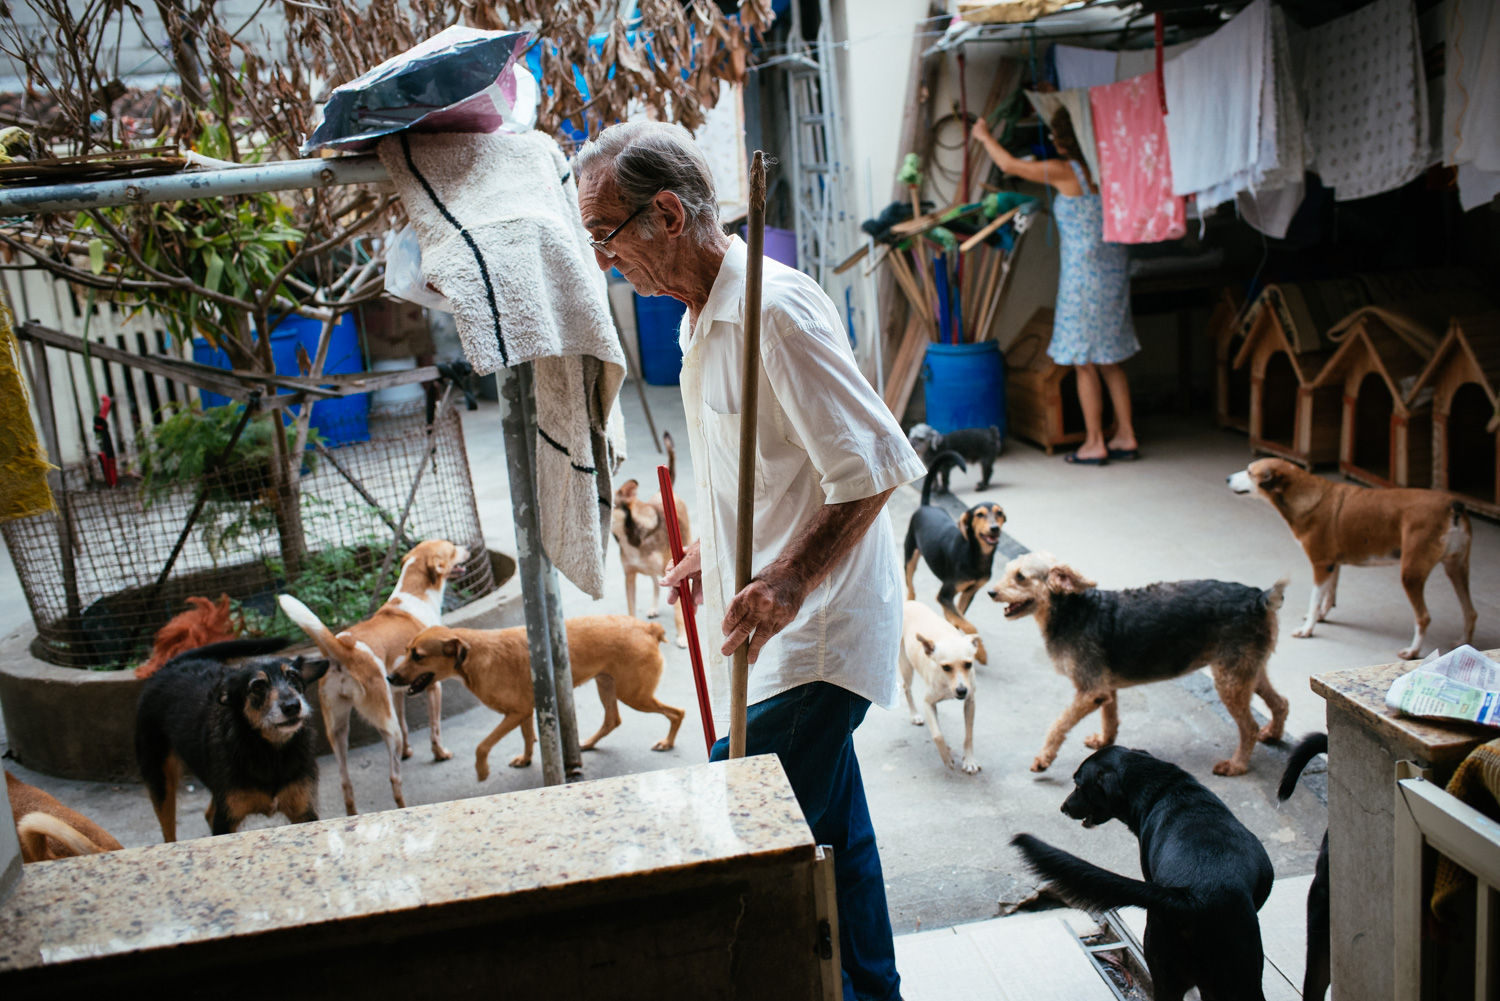 Euracy Aguiar Prado, 80 (center) with his wife Edina Ferreira Prado, 70, as they clean up after their dogs. They adopted their first two dogs 15 years ago. Ever since, Mrs. Prado slowly began adopting abandodned dogs from their neighborhood. Today they estimate thay have at least 100 dogs at home. Rio de Janeiro, Brazil, 03-15-2015